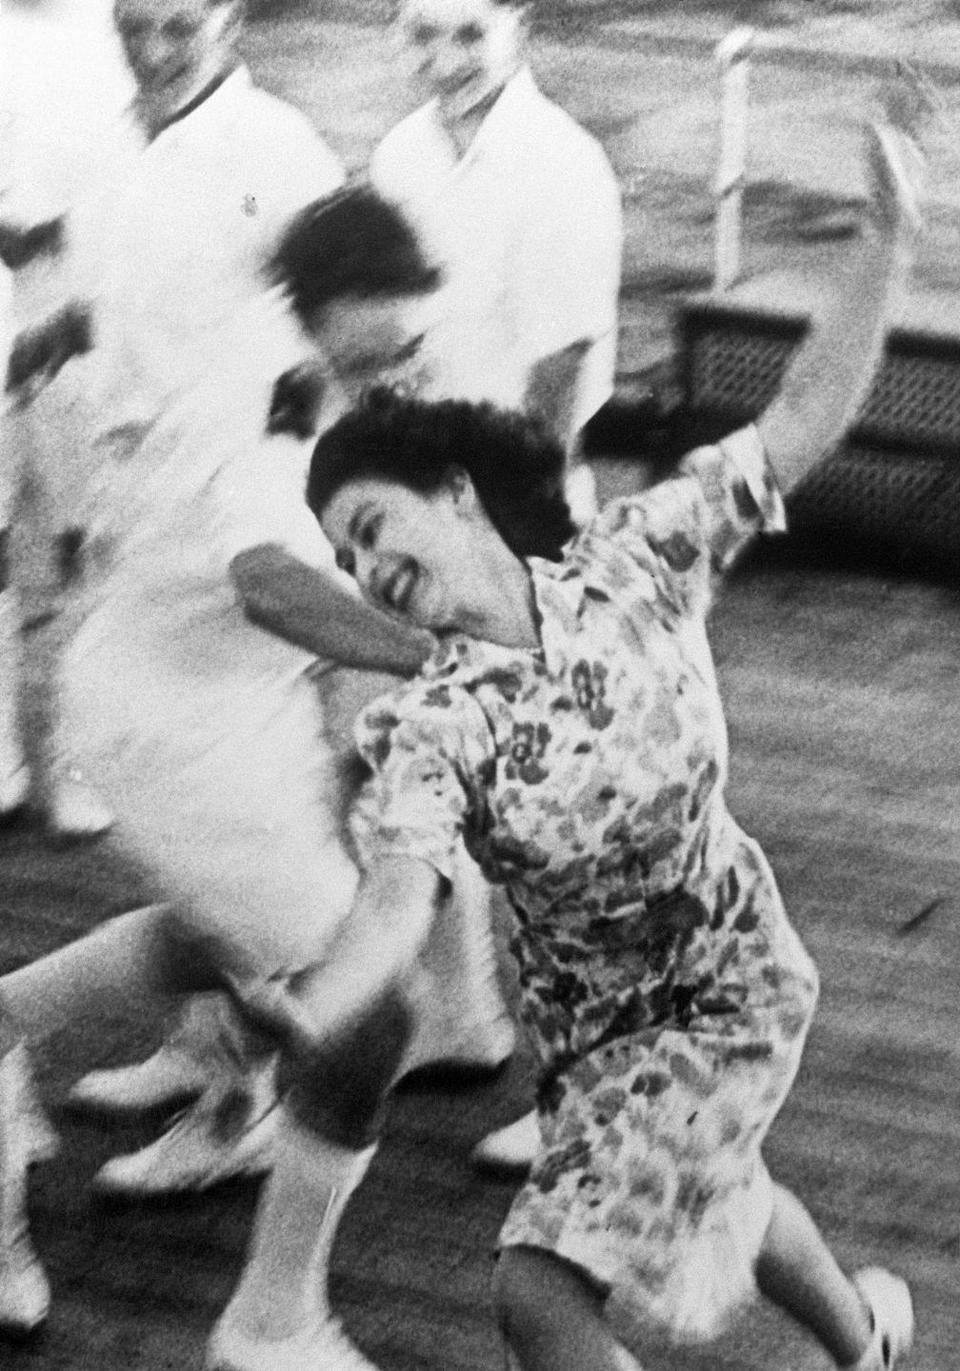 <p>Then Princess Elizabeth plays a game of tag with shipmen aboard the HMS Vanguard. </p>